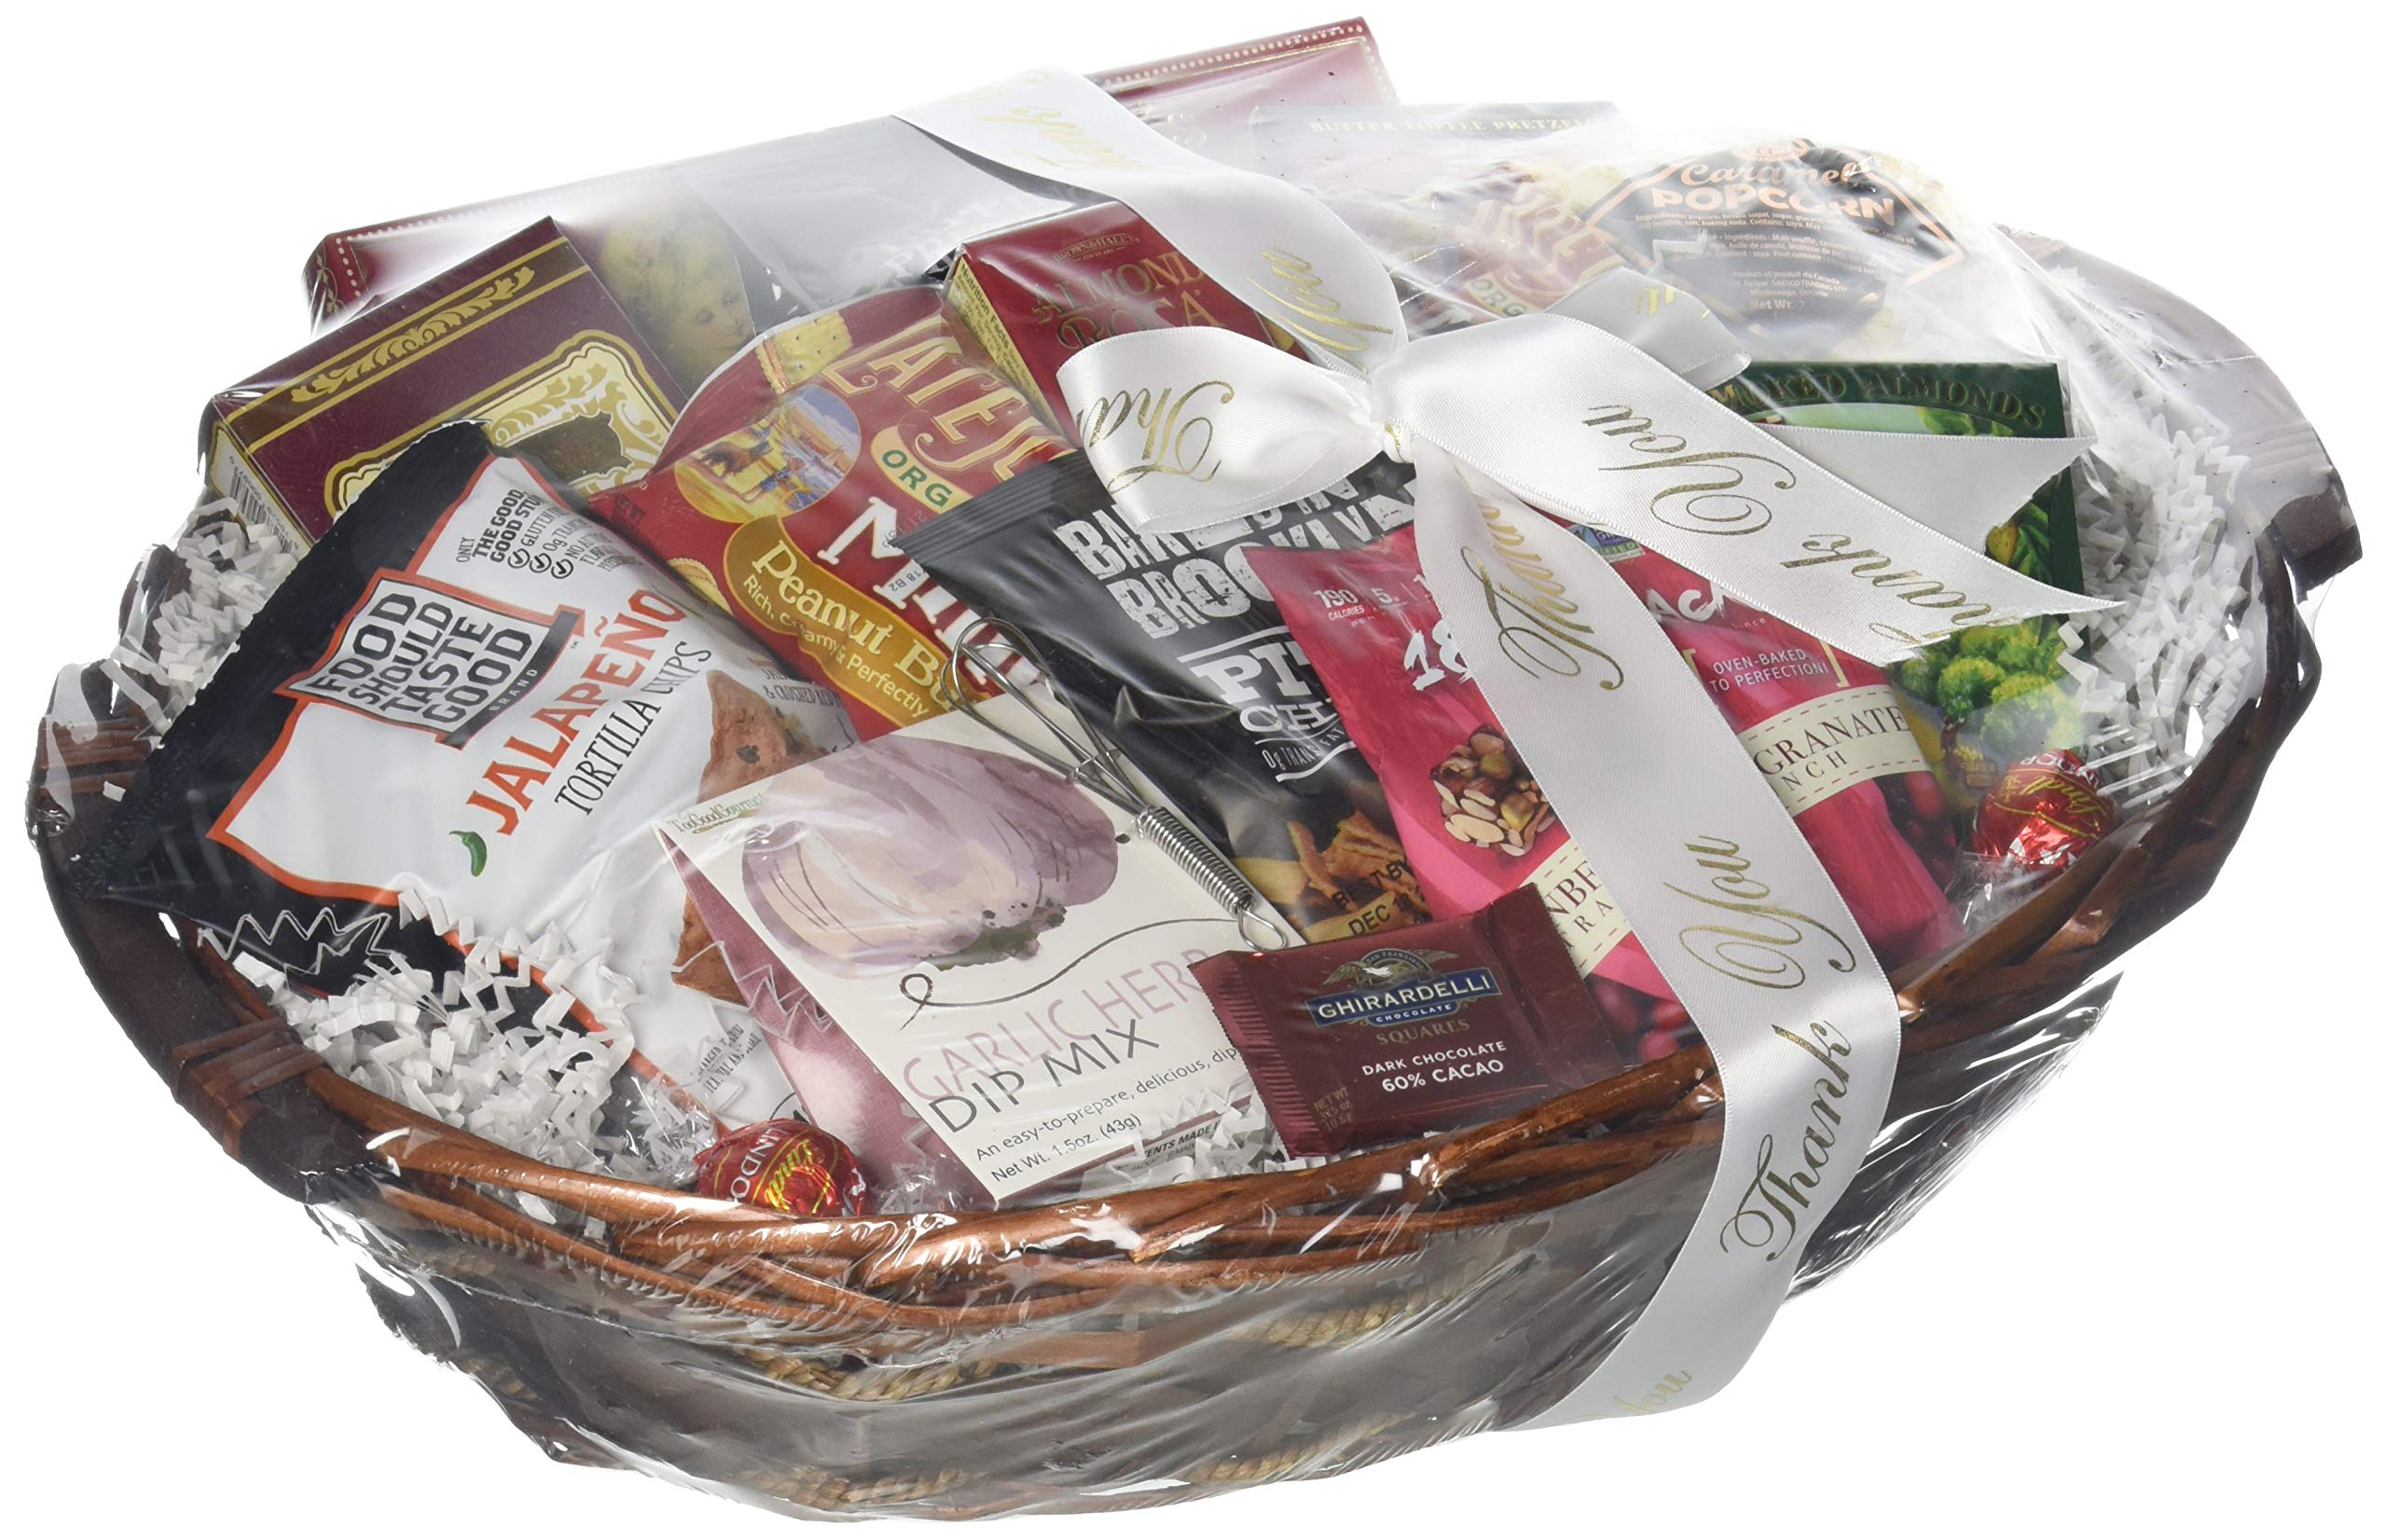 GreatArrivals Snack Attack Thank You Snack Basket, Medium, 4 Pound by GreatArrivals Gift Baskets (Image #1)